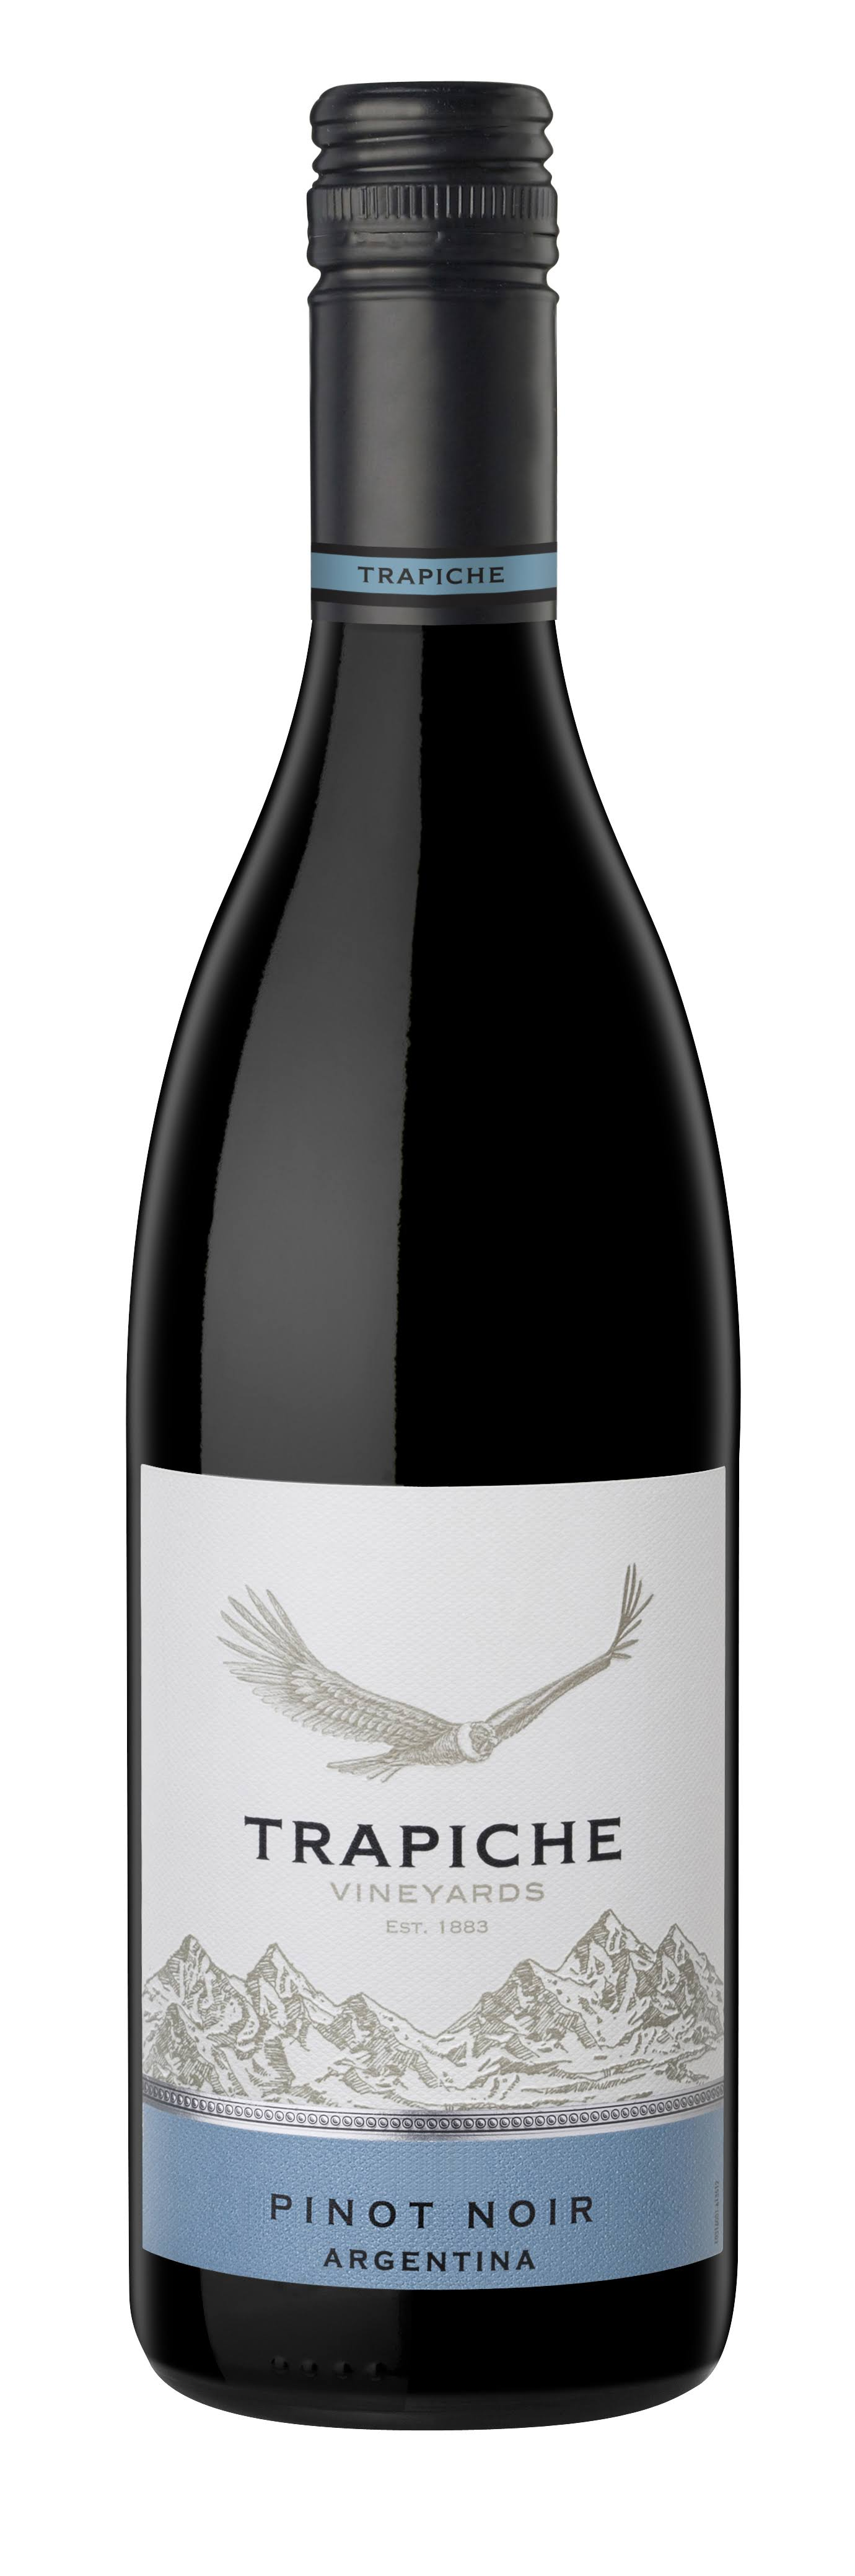 Trapiche Pinot Noir, Mendoza (Vintage Varies) - 750 ml bottle